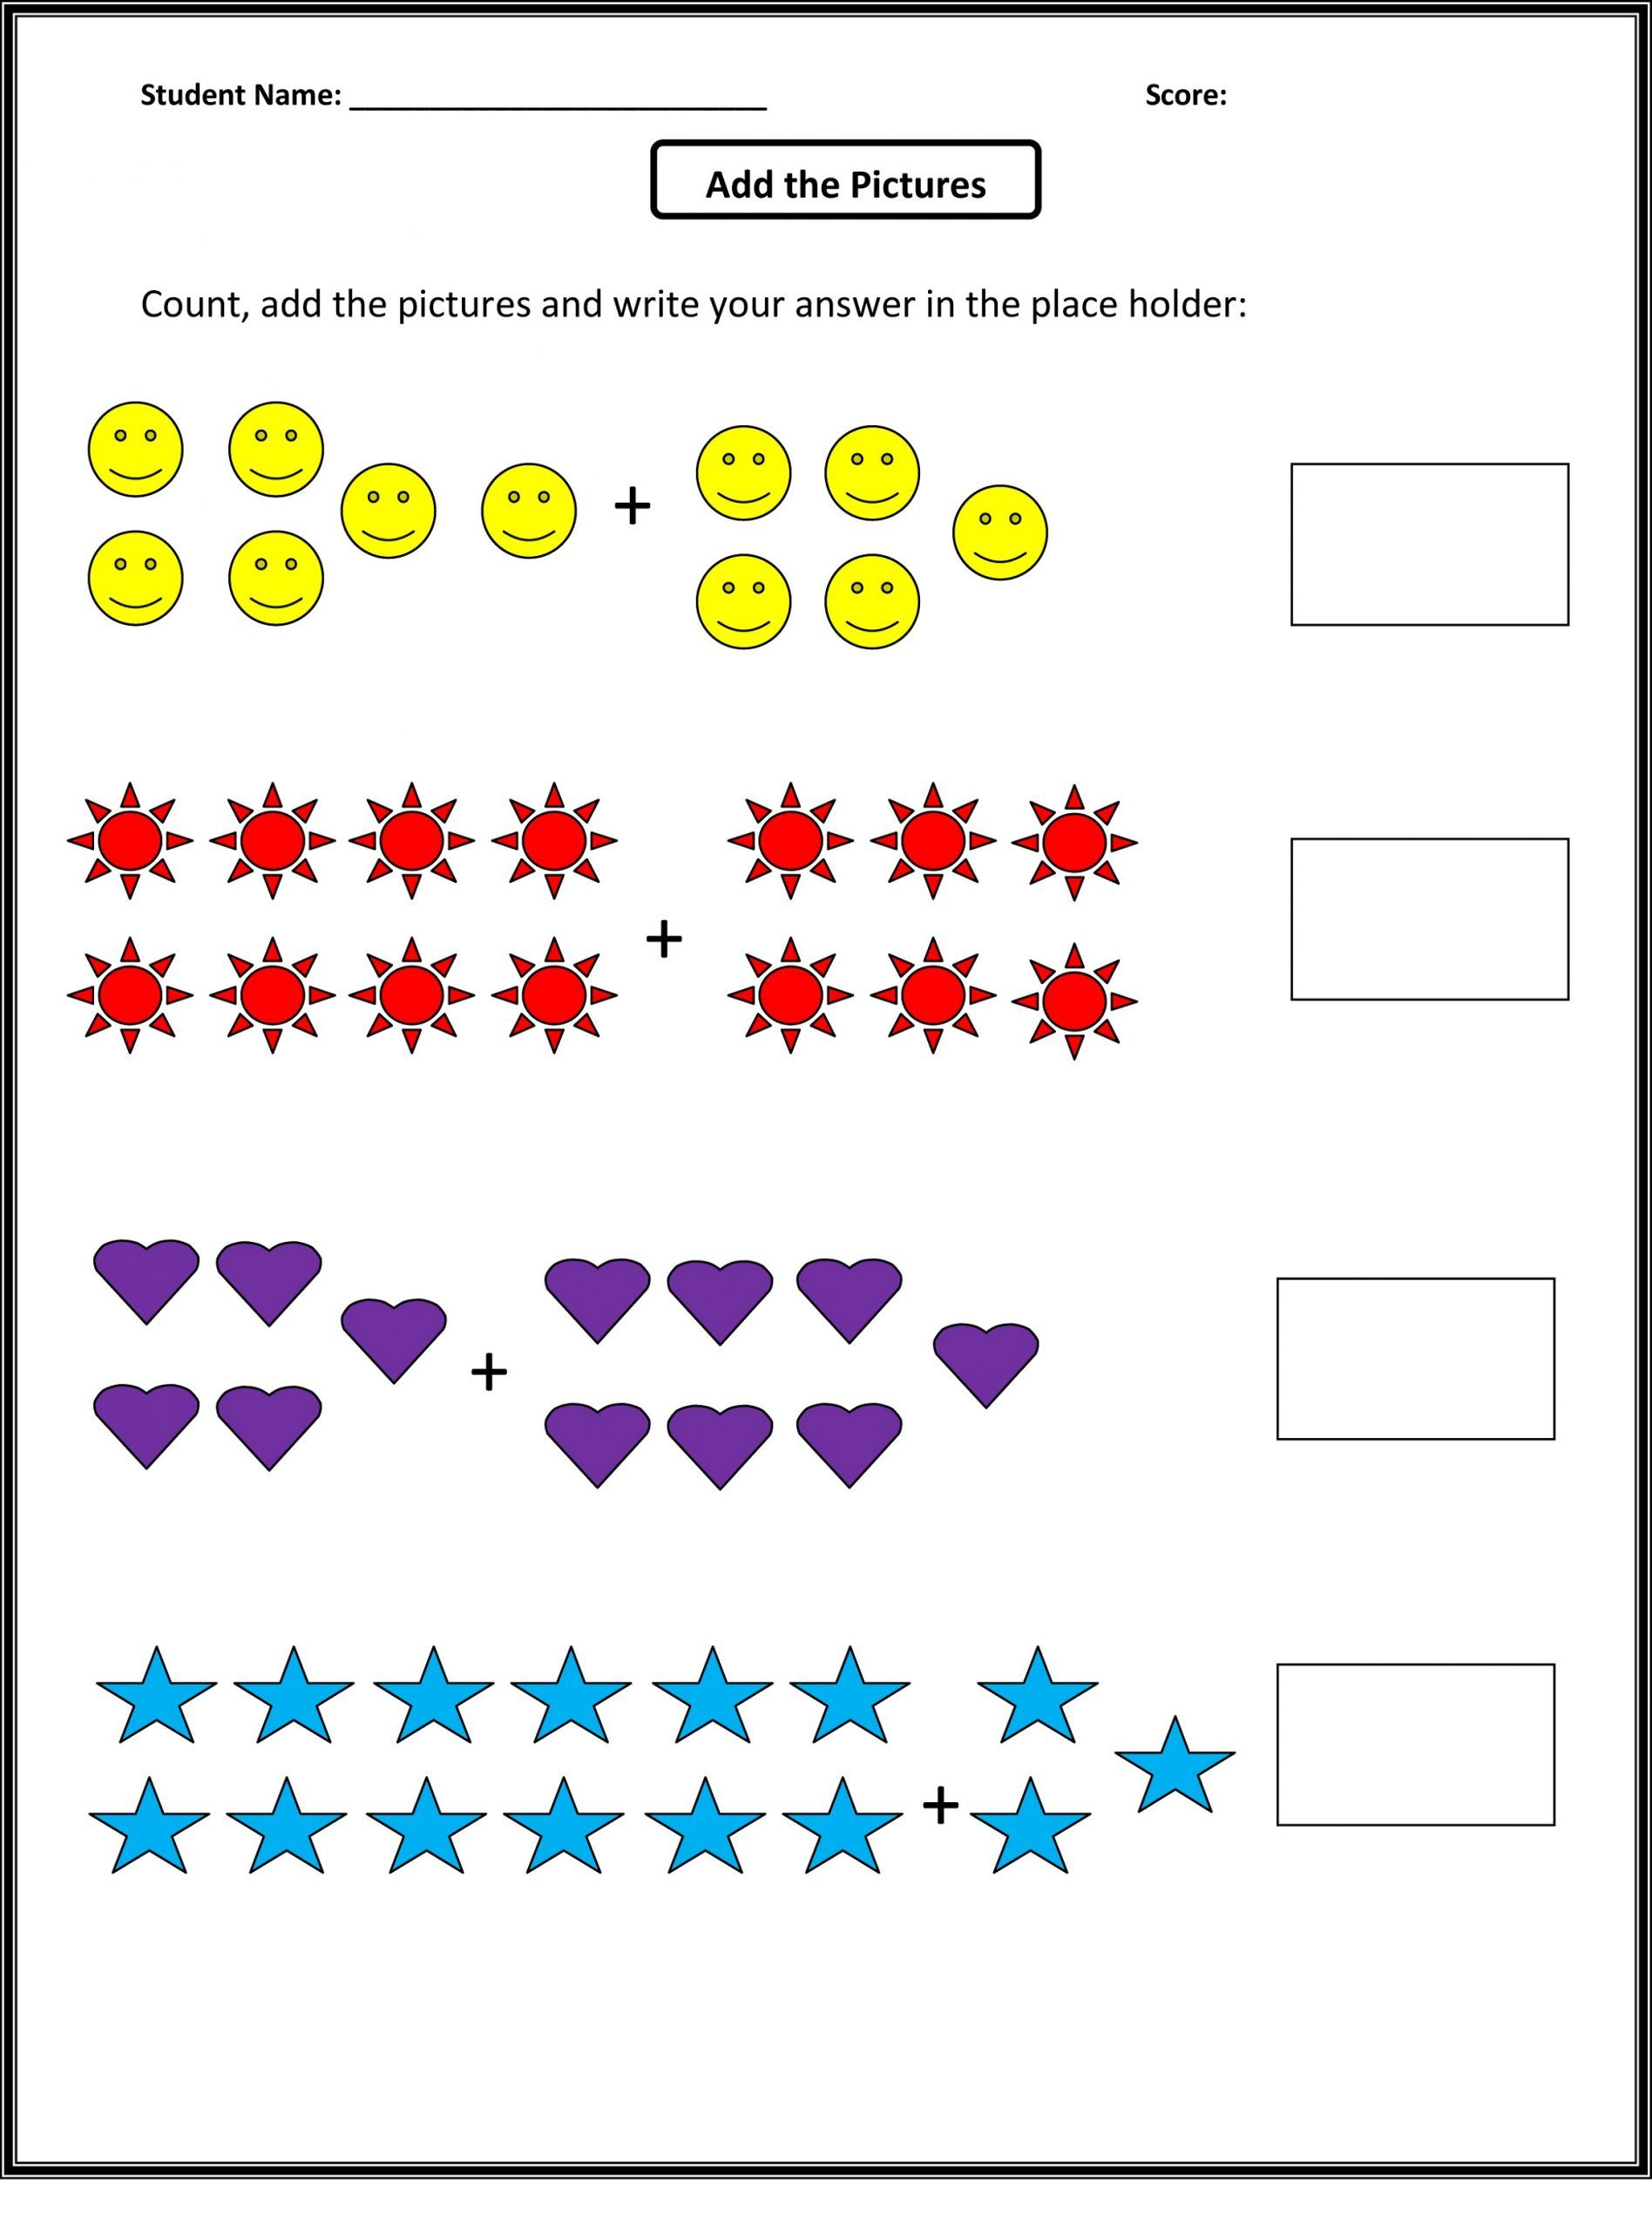 Free Math Worksheets for Grade 1 Review   1st grade math worksheets [ 2560 x 1896 Pixel ]